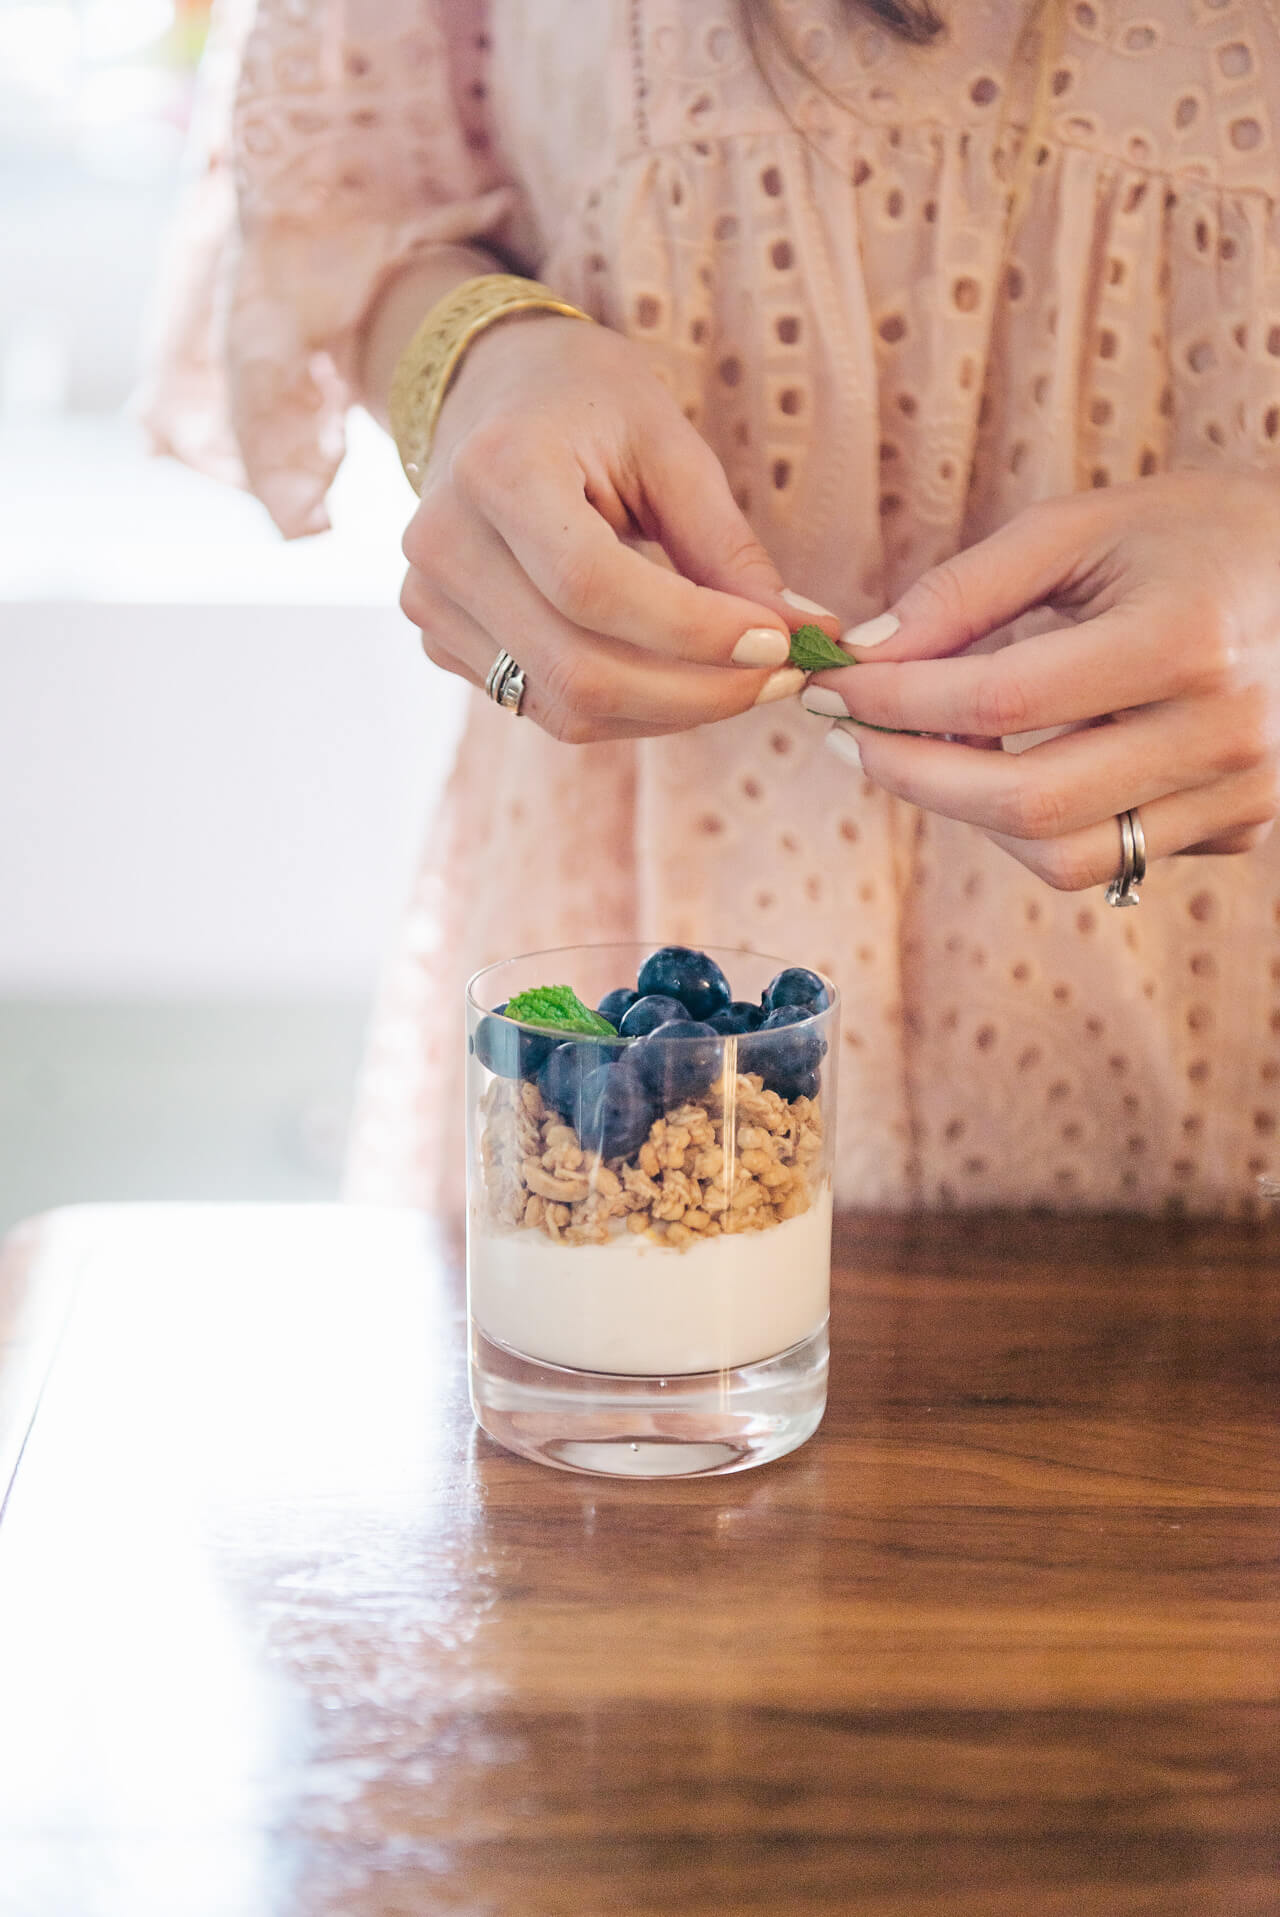 Blueberry parfait with granola and cute presentation